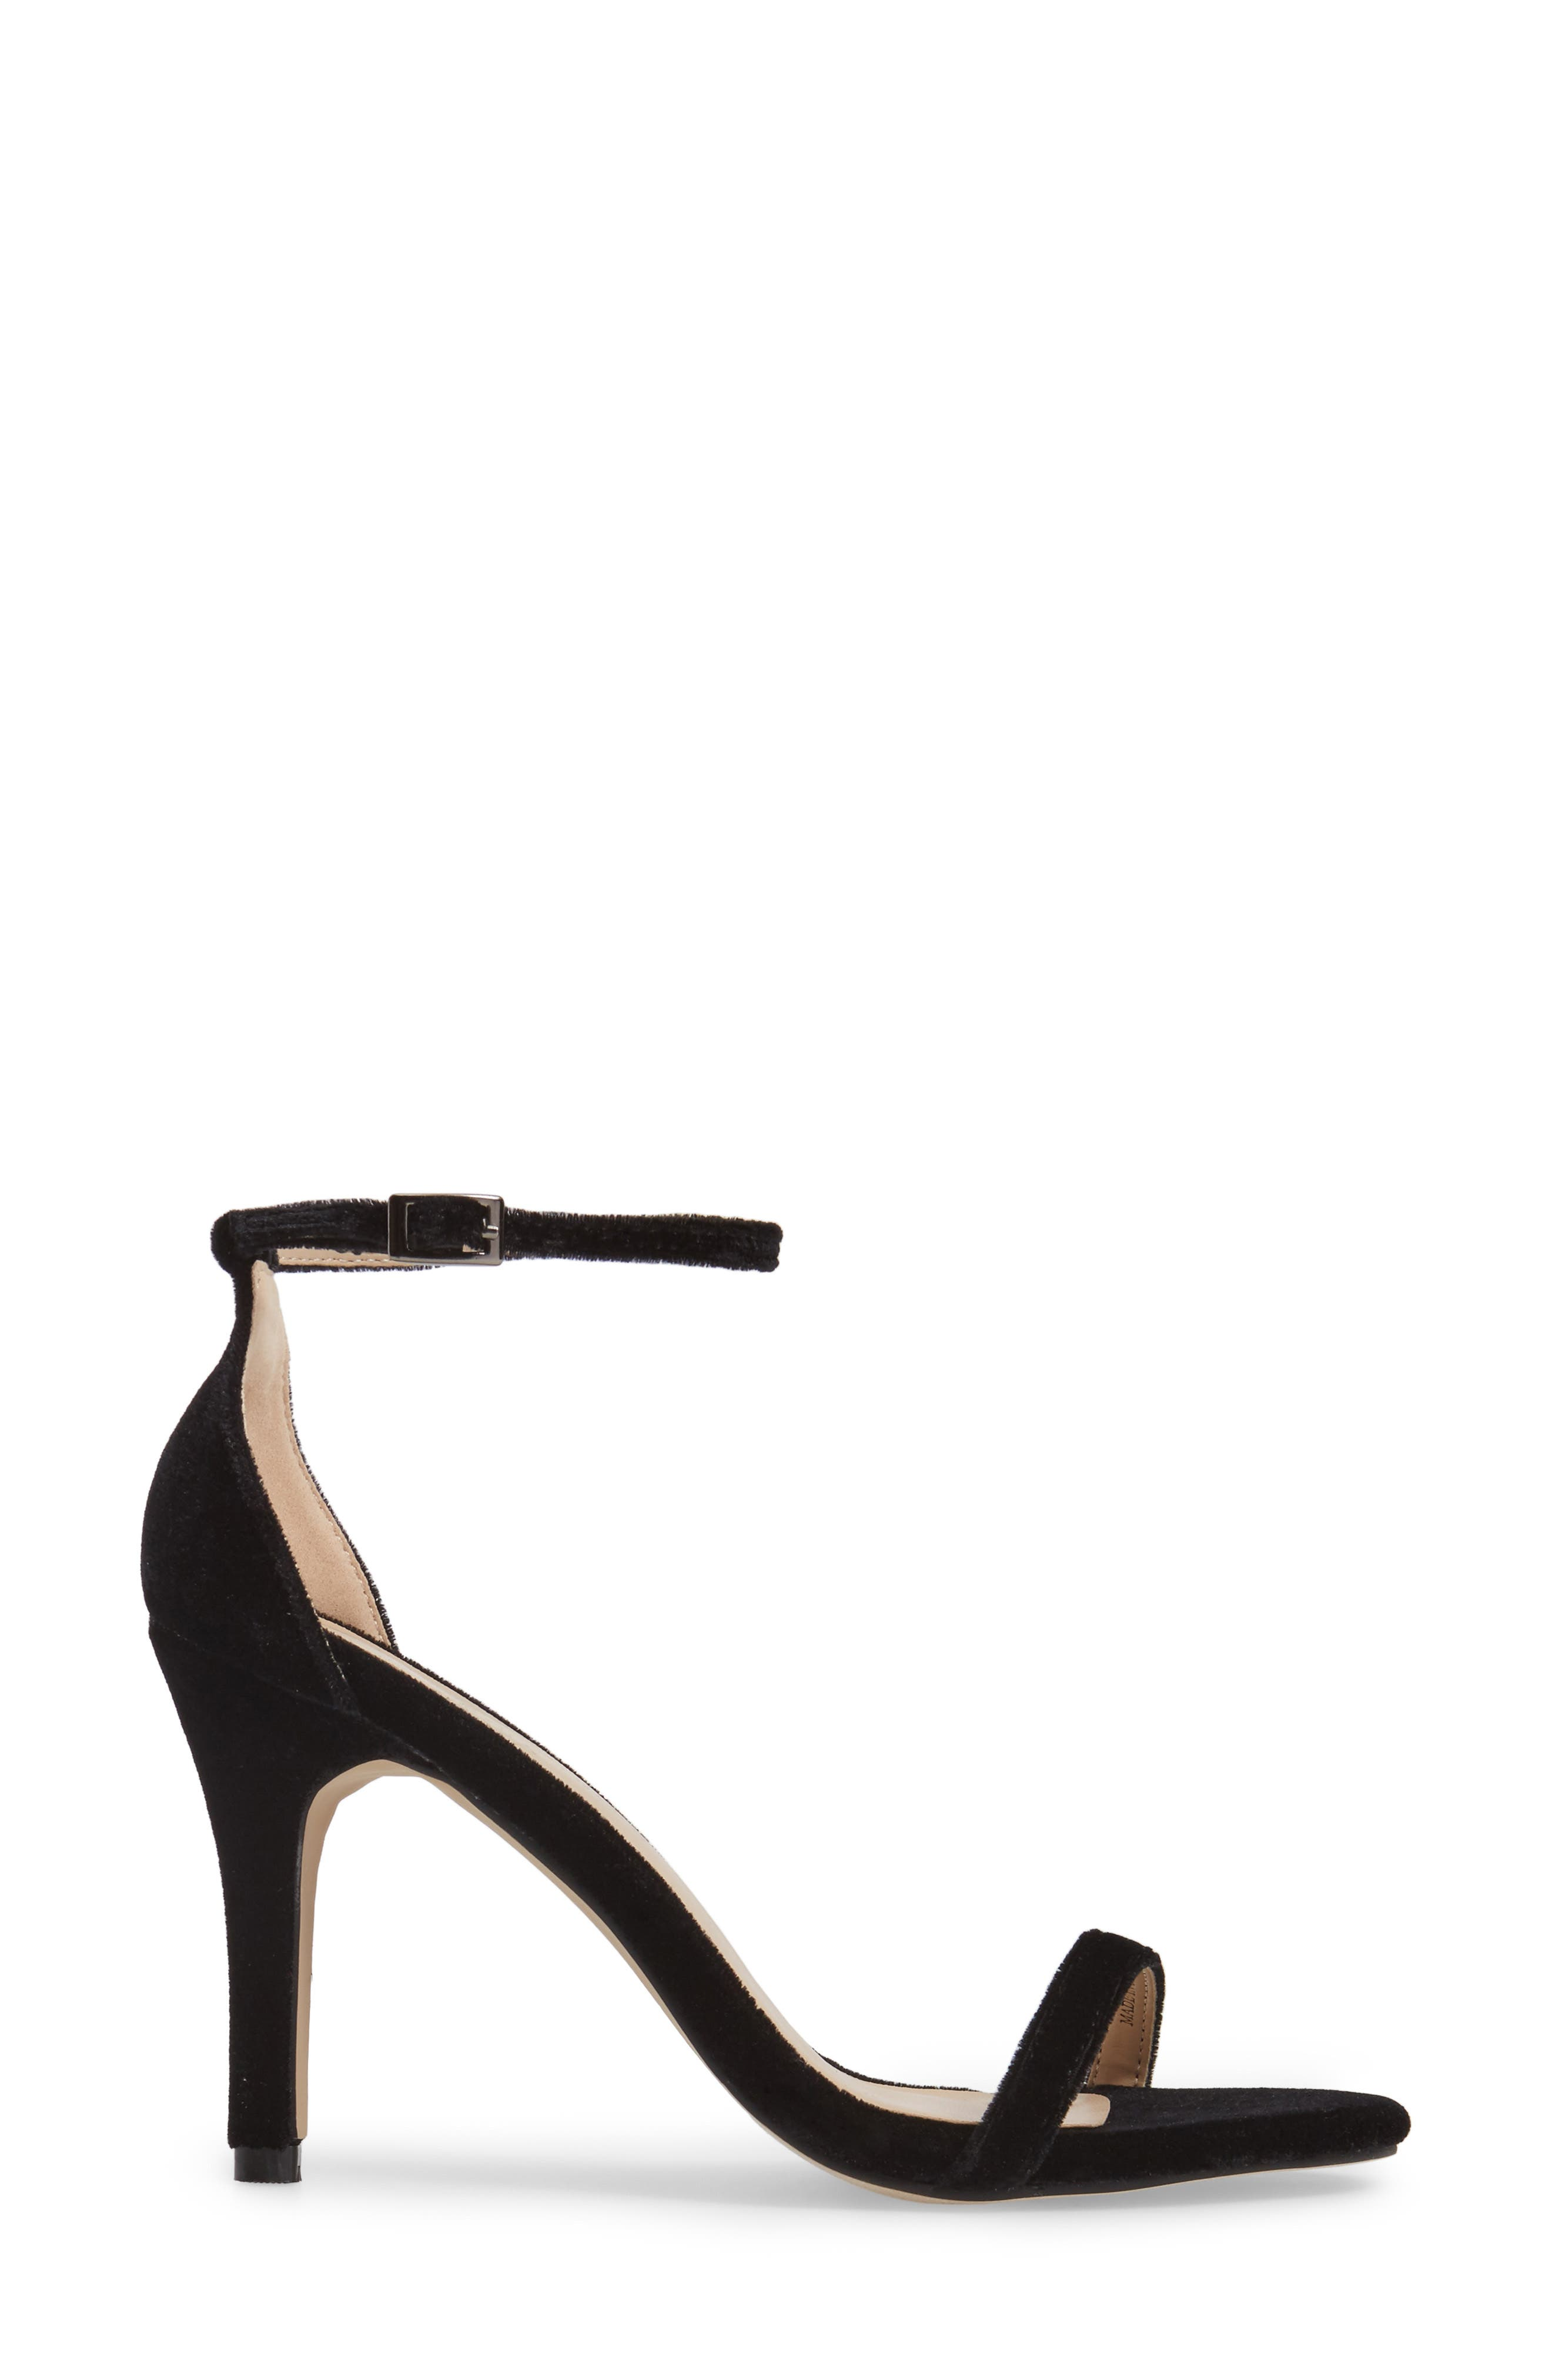 Mini Ankle Strap Sandal,                             Alternate thumbnail 3, color,                             Black Velvet